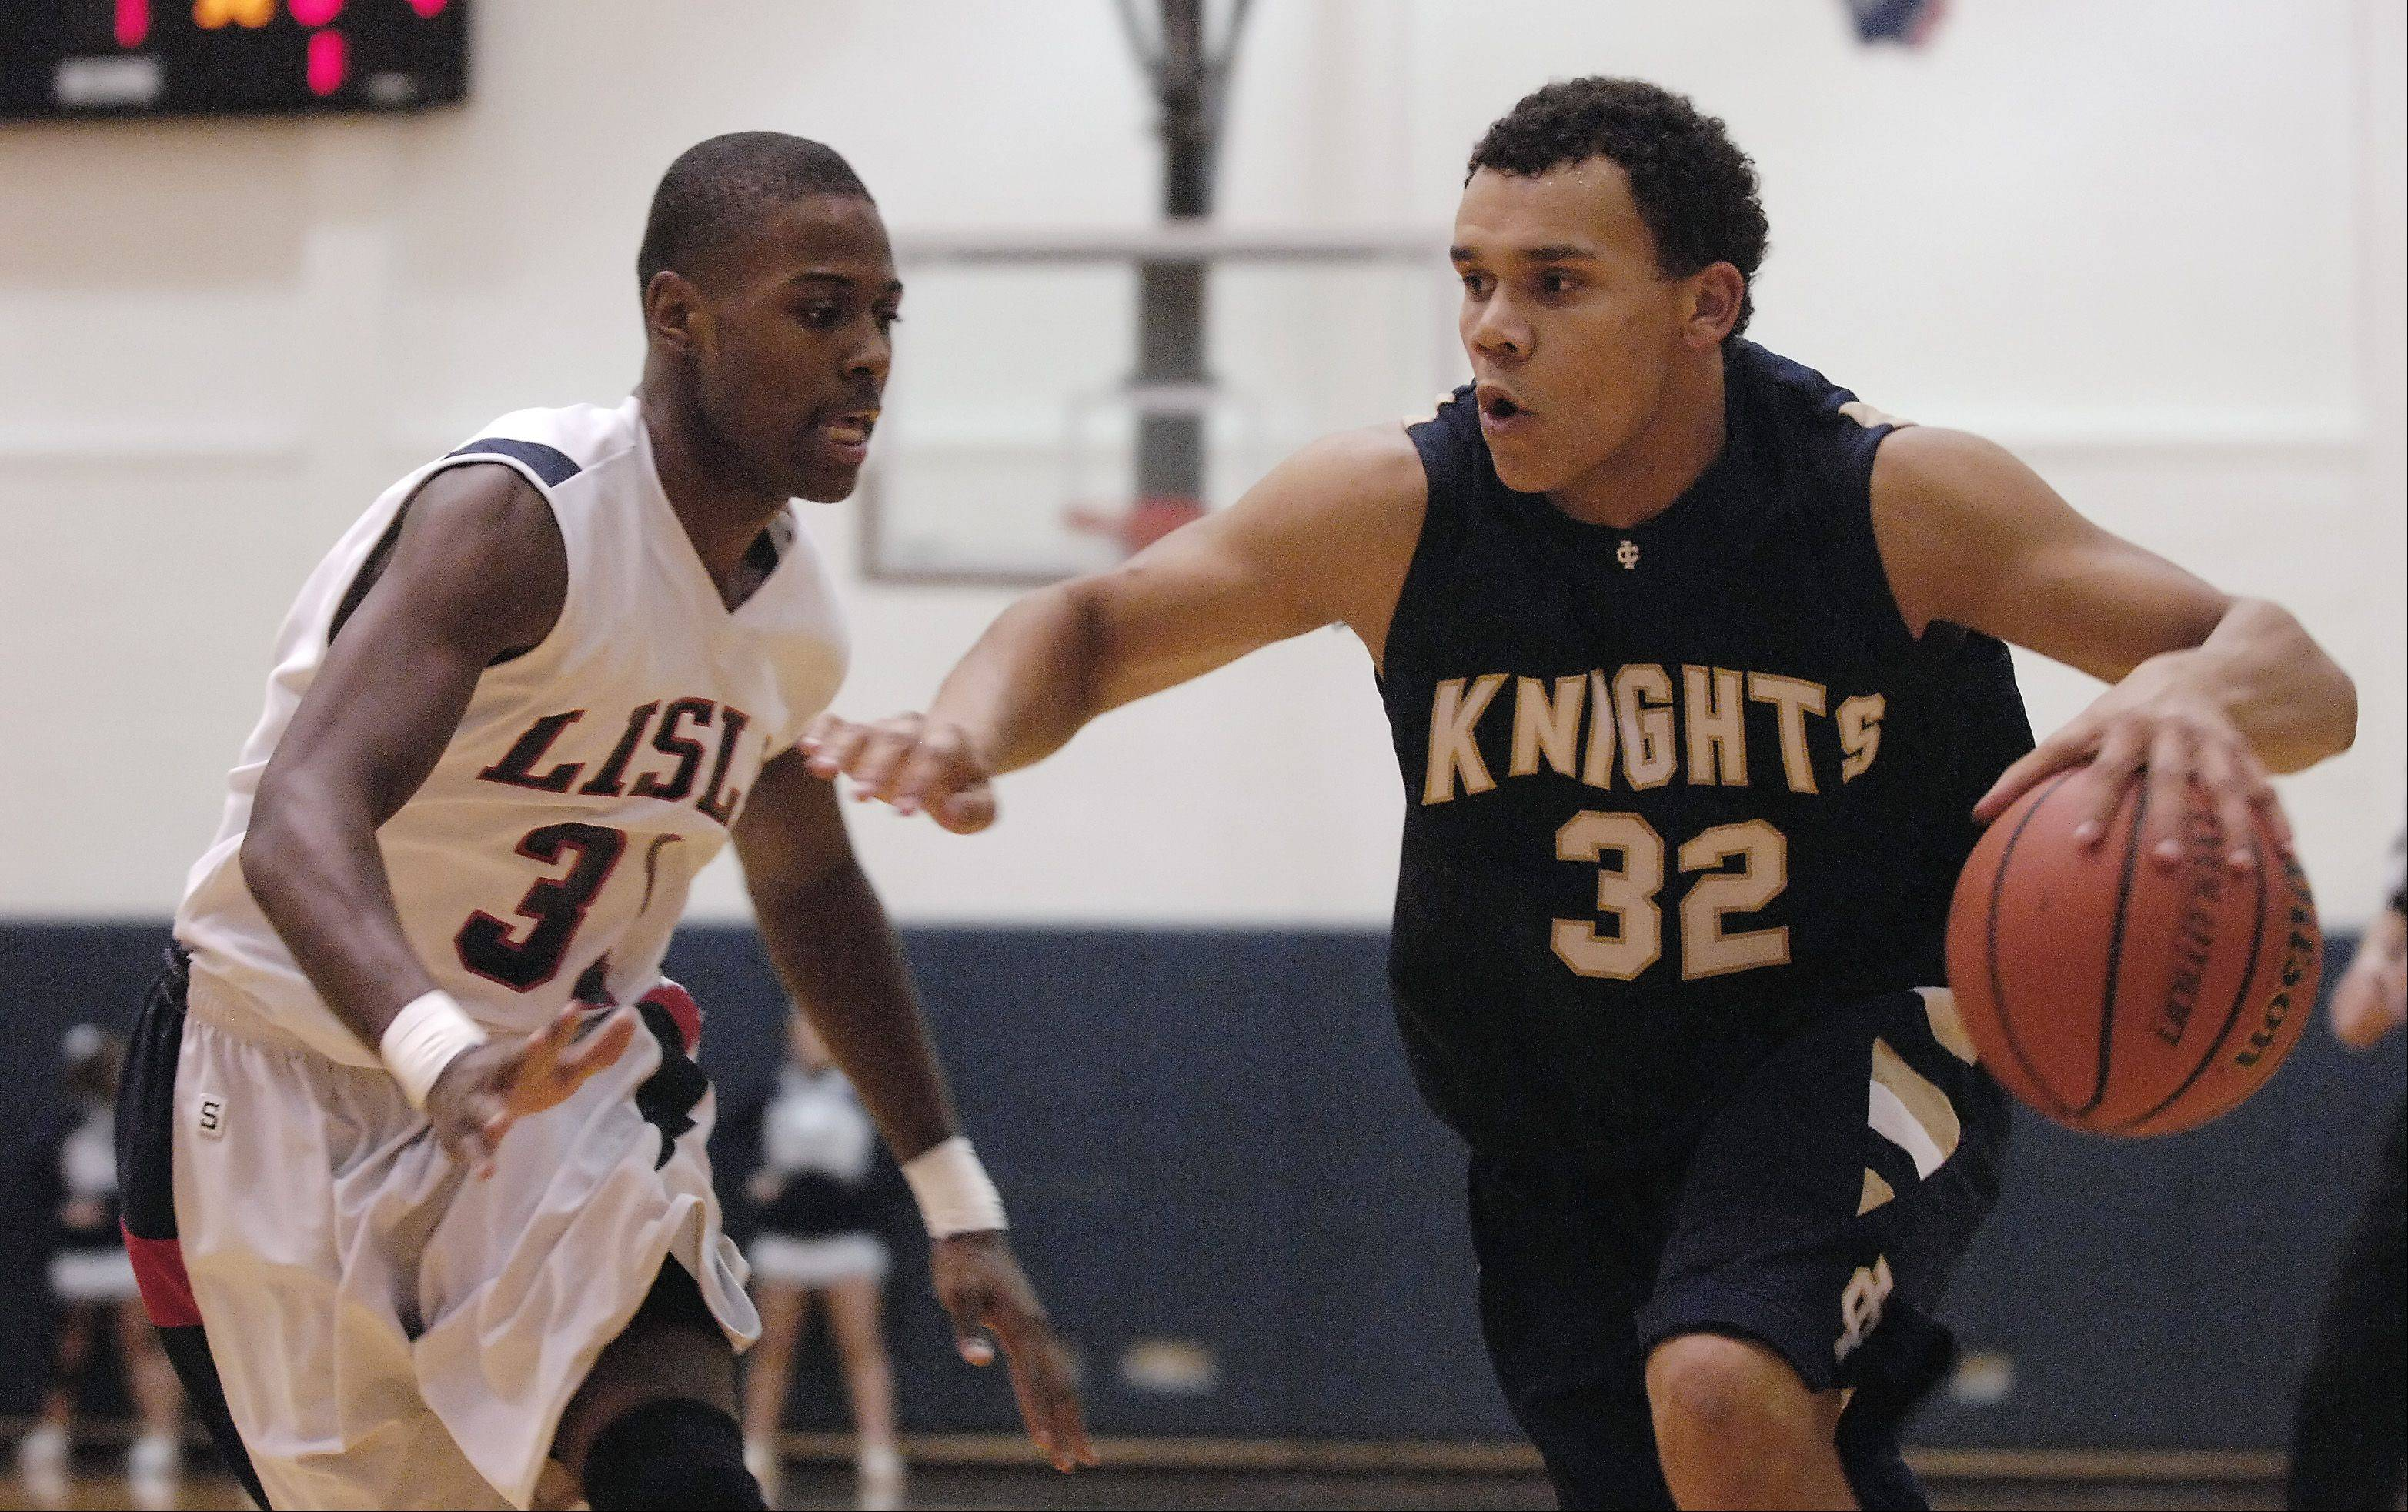 Lamont Ross of Lisle High School guards Demetrius Carr of Immaculate Conception High School.